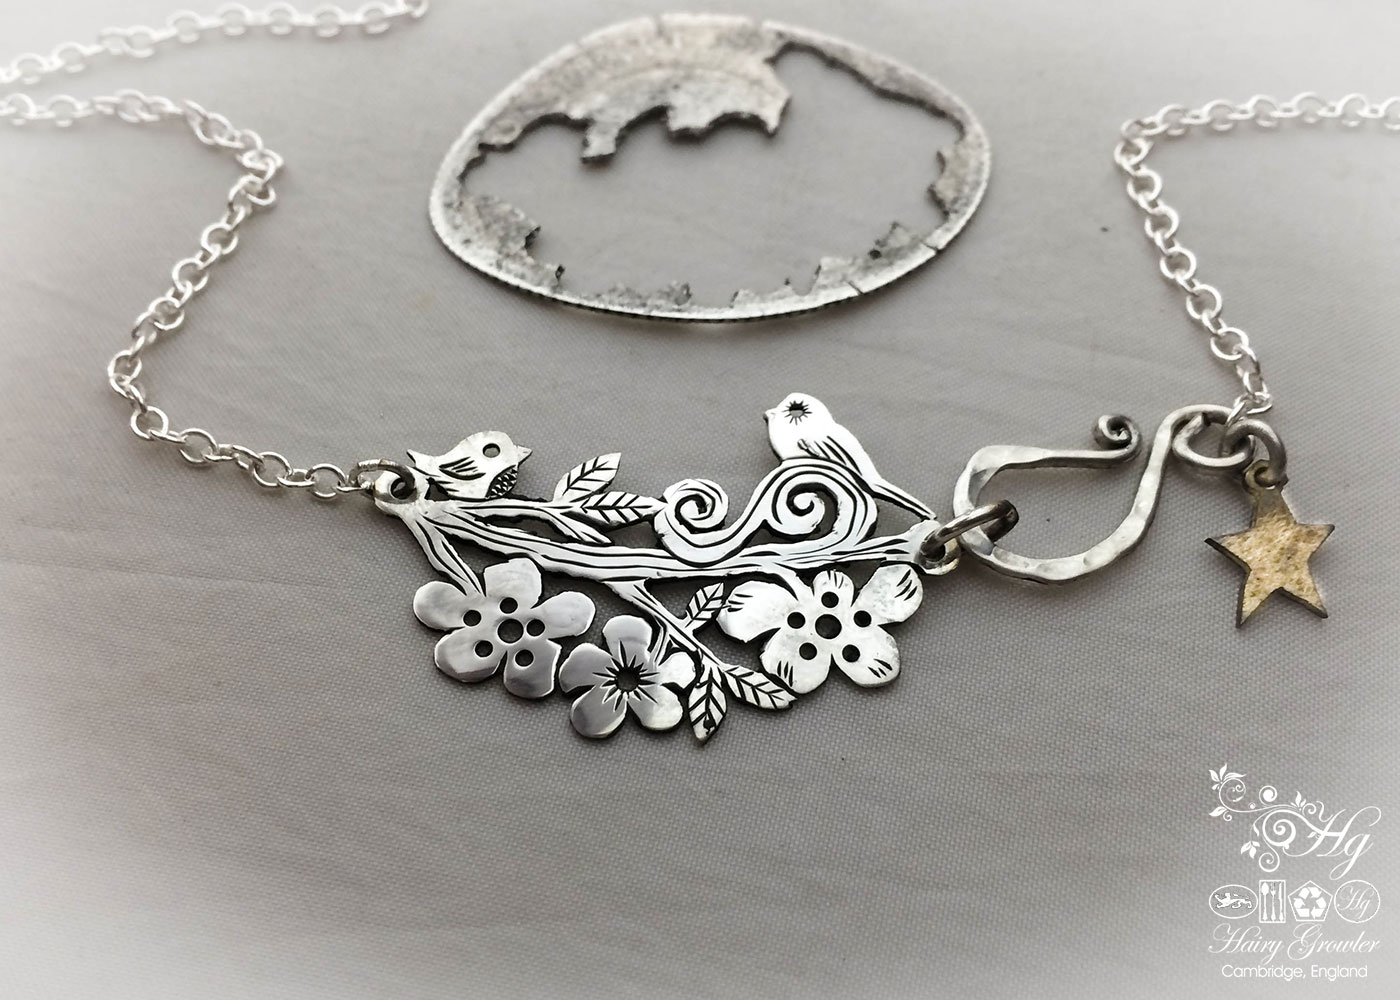 Handcrafted, upcycled, sterling silver, birdsong, tweet necklace being handmade